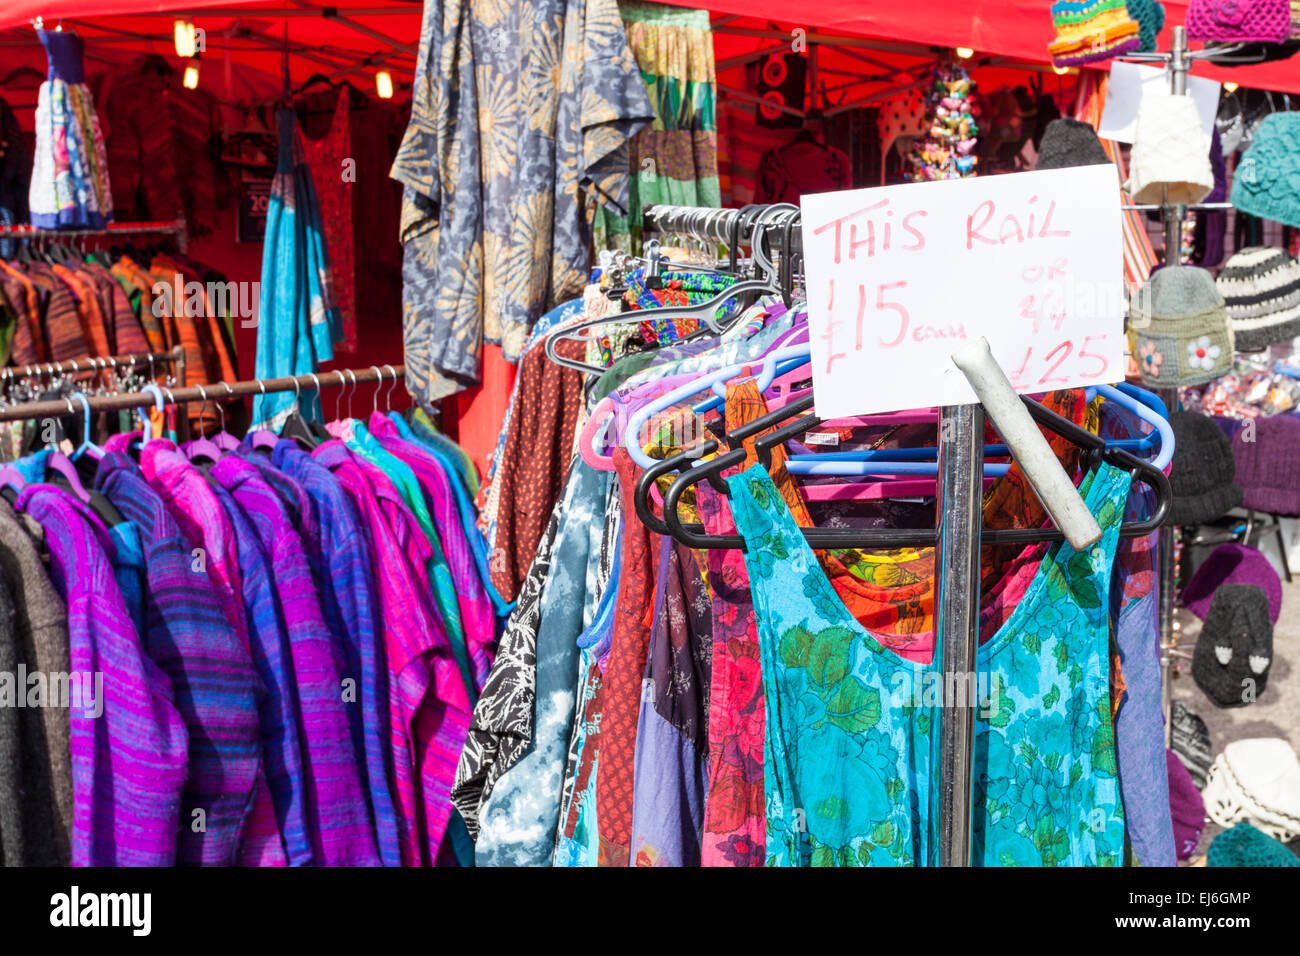 Dress rail with dresses for sale with a price ticket showing cheap prices for clothes on a clothing stall at a market, - Stock Image